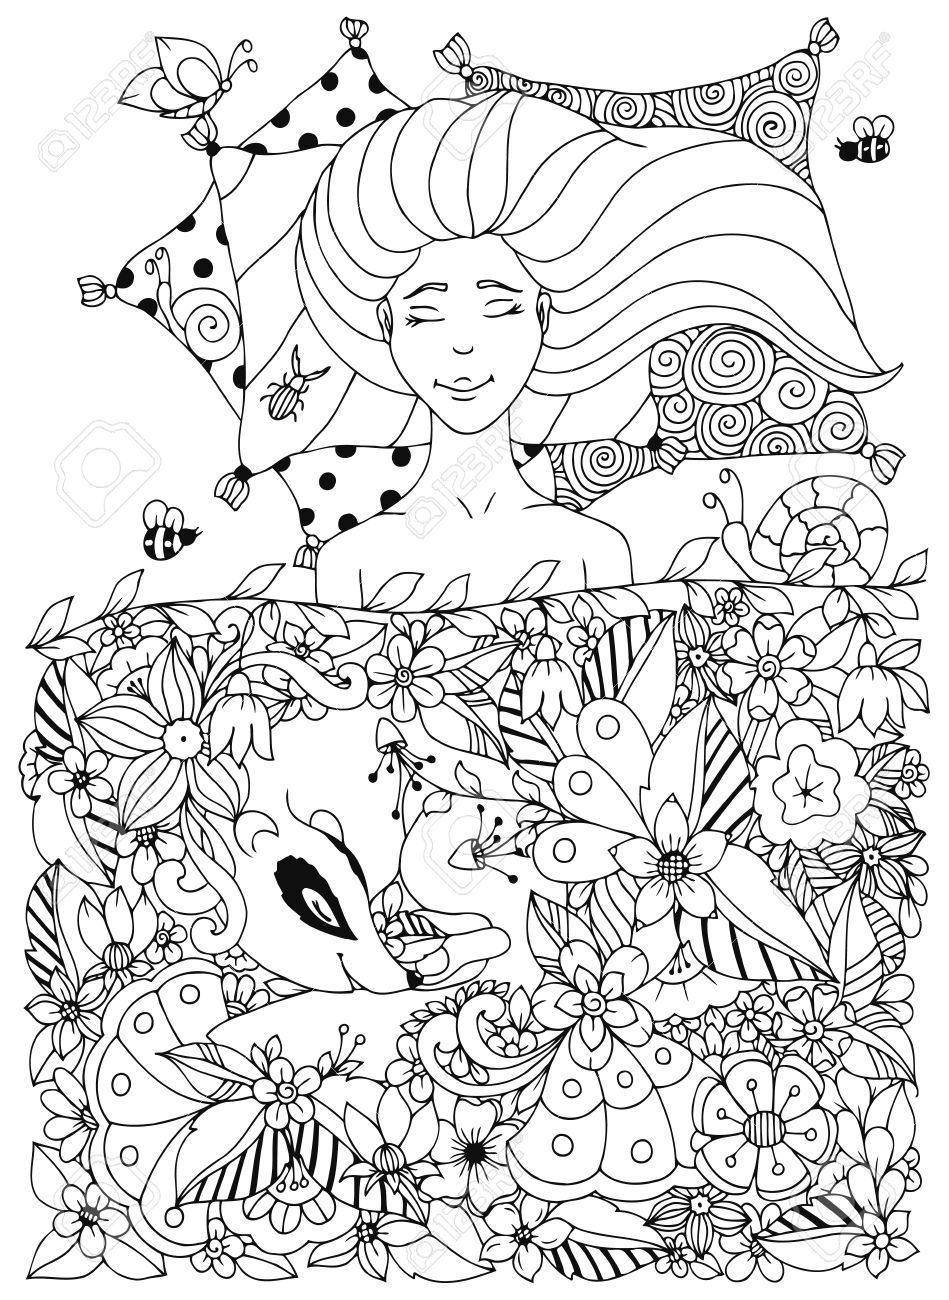 Doodle Flowers, Badger, Animal. Coloring Book Anti Stress For Adults. Coloring  Page. Black And White.